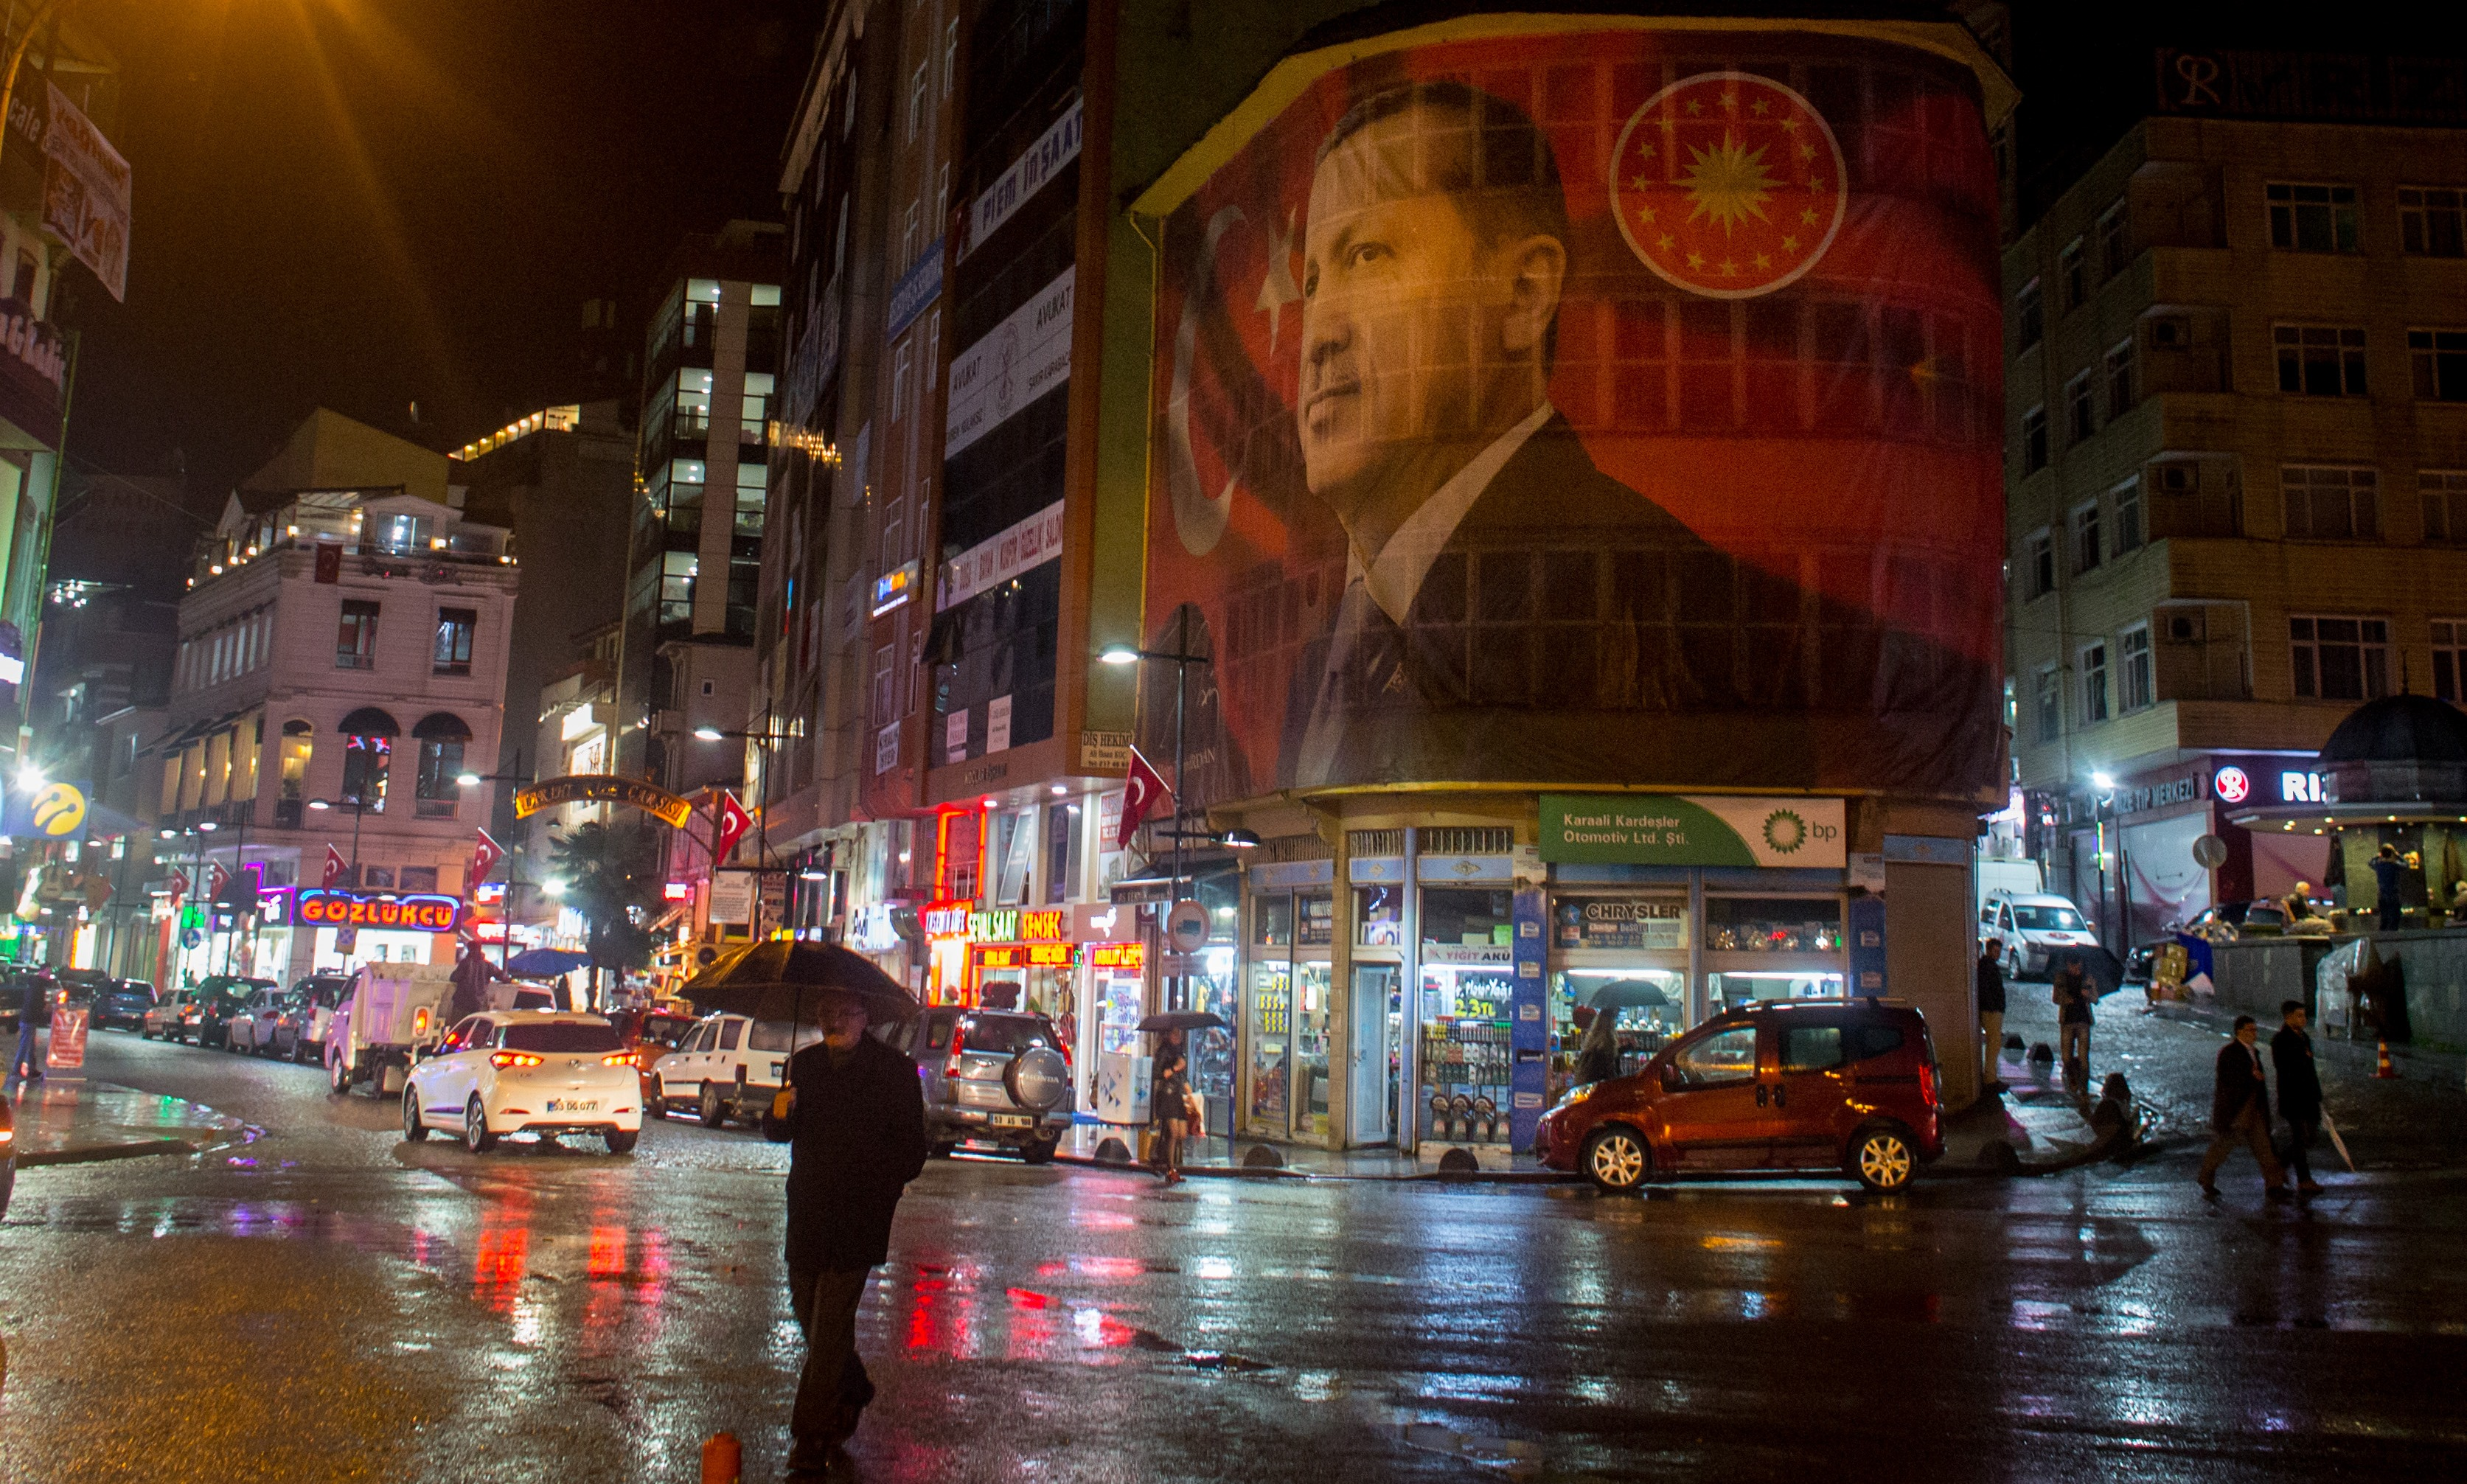 Poster of Turkish President Recep Tayyip Erdogan in Rize, Turkey. (Chris McGrath/Getty)